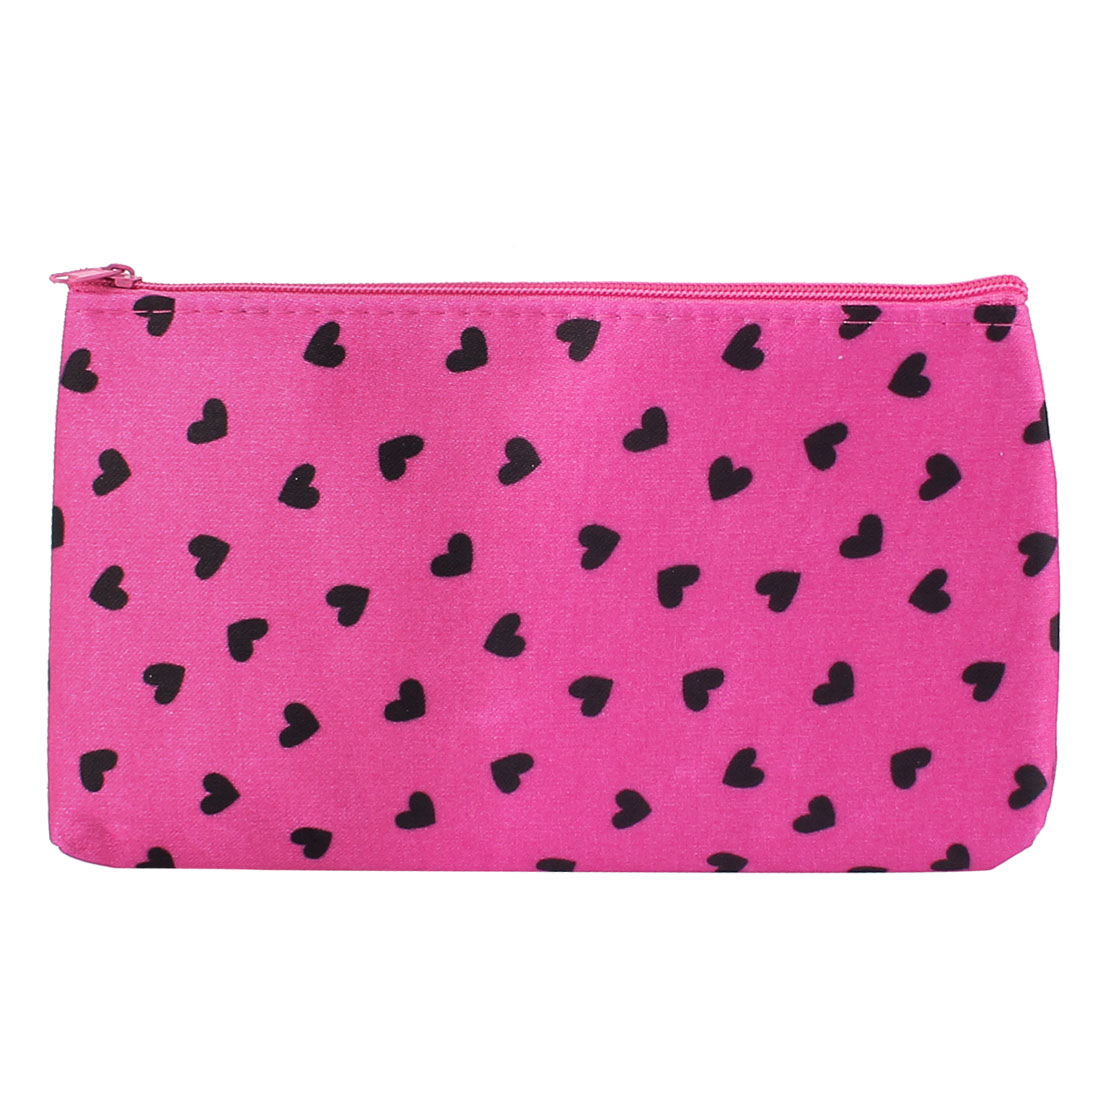 Woman Hearts Printed Makeup Portable Cosmetic Bag Holder Organizer Black Fuchsia